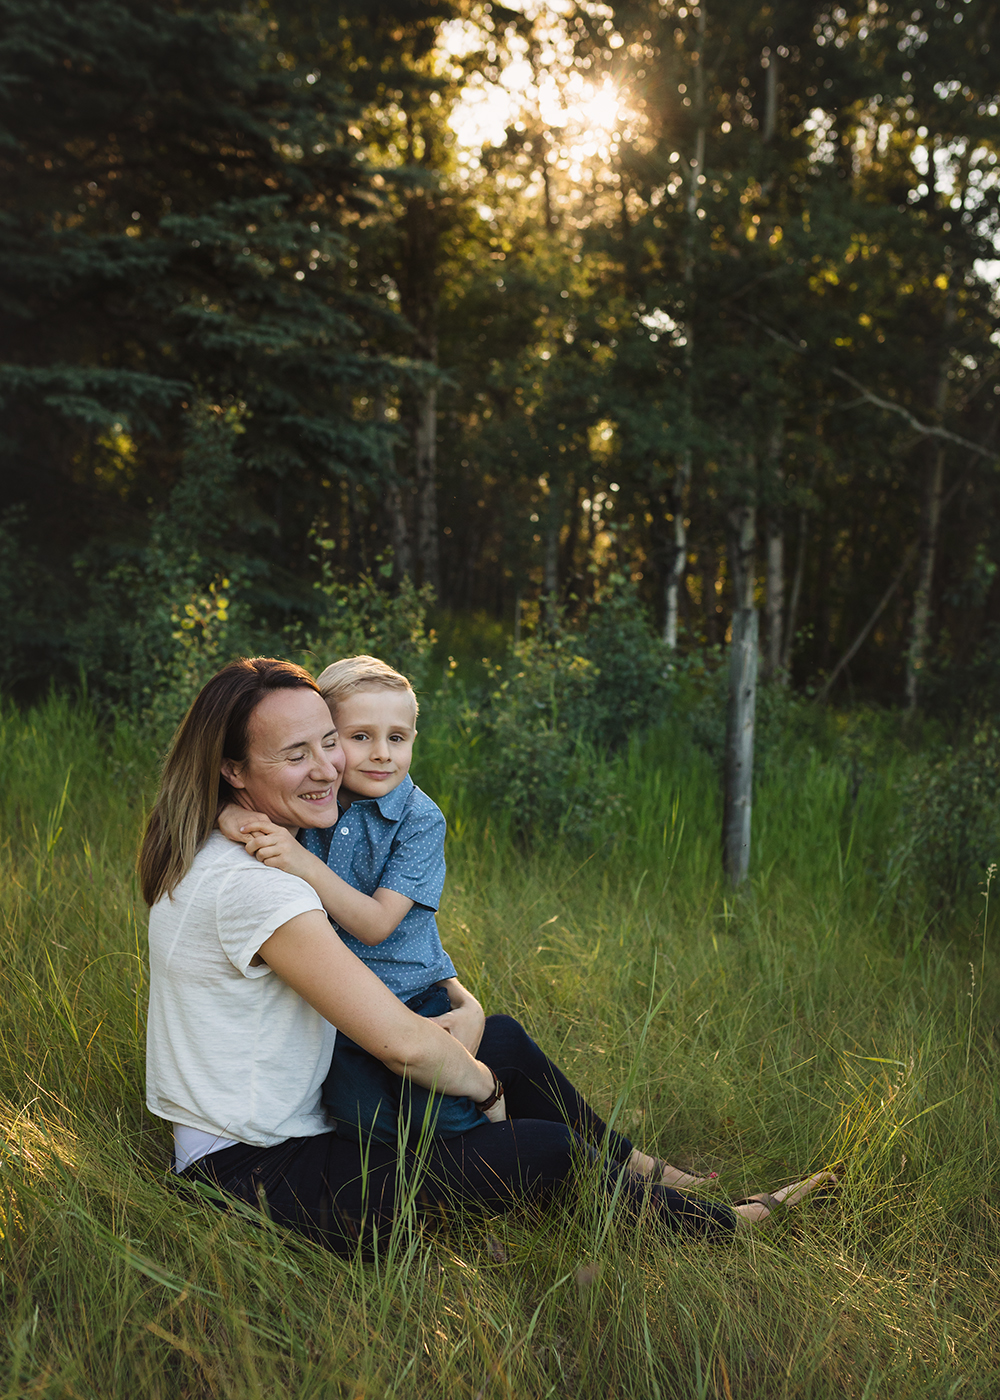 Edmonton Family Photographer_Berg Family Sneak Peek 10.jpg